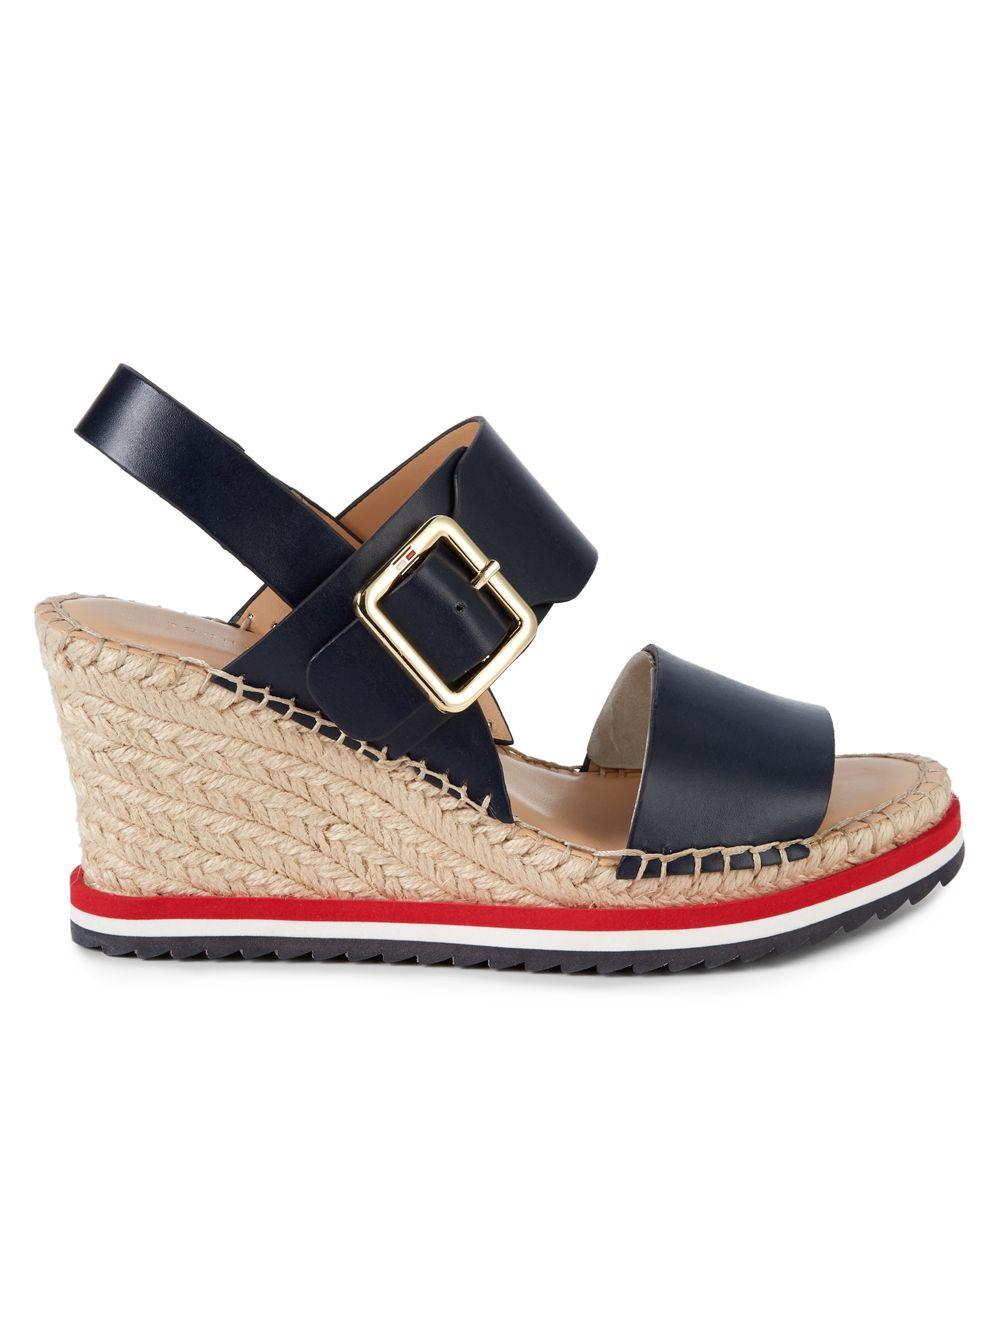 a506b09fb Lyst - Tommy Hilfiger Yazzi Espadrille Wedge Sandal in Blue - Save 17%